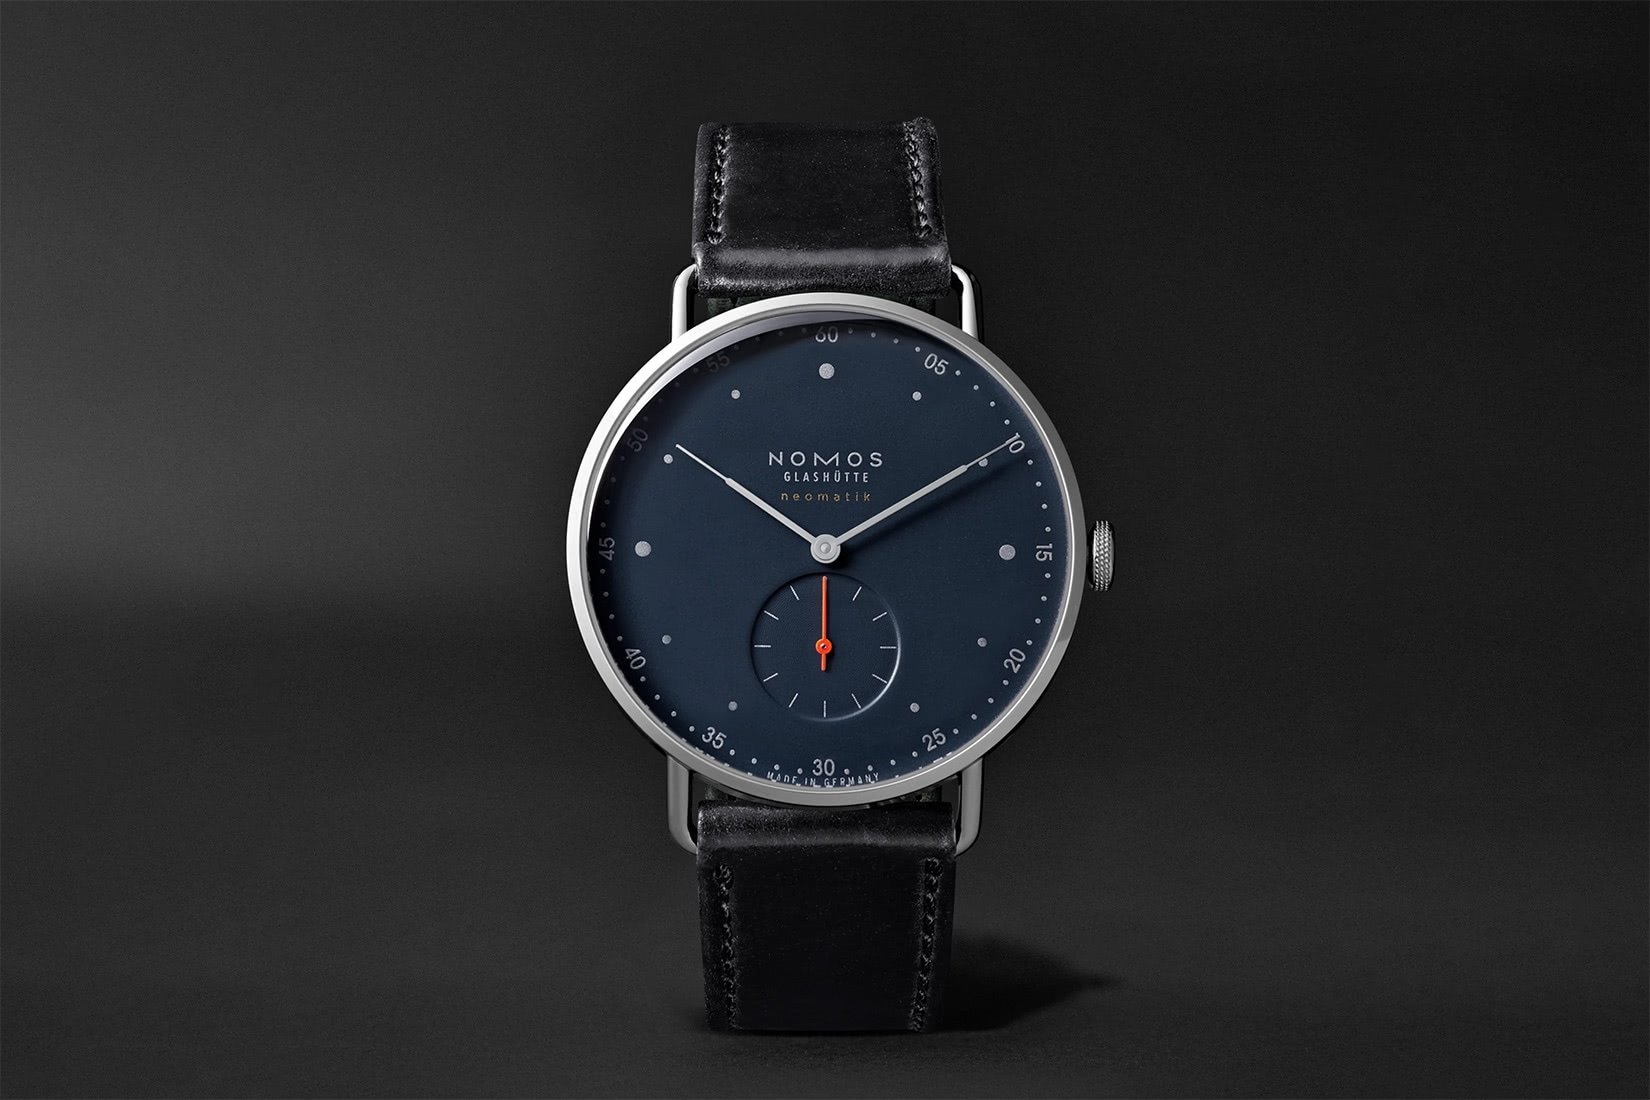 best dress watches nomos glashutte at work orion neomatik - Luxe Digital